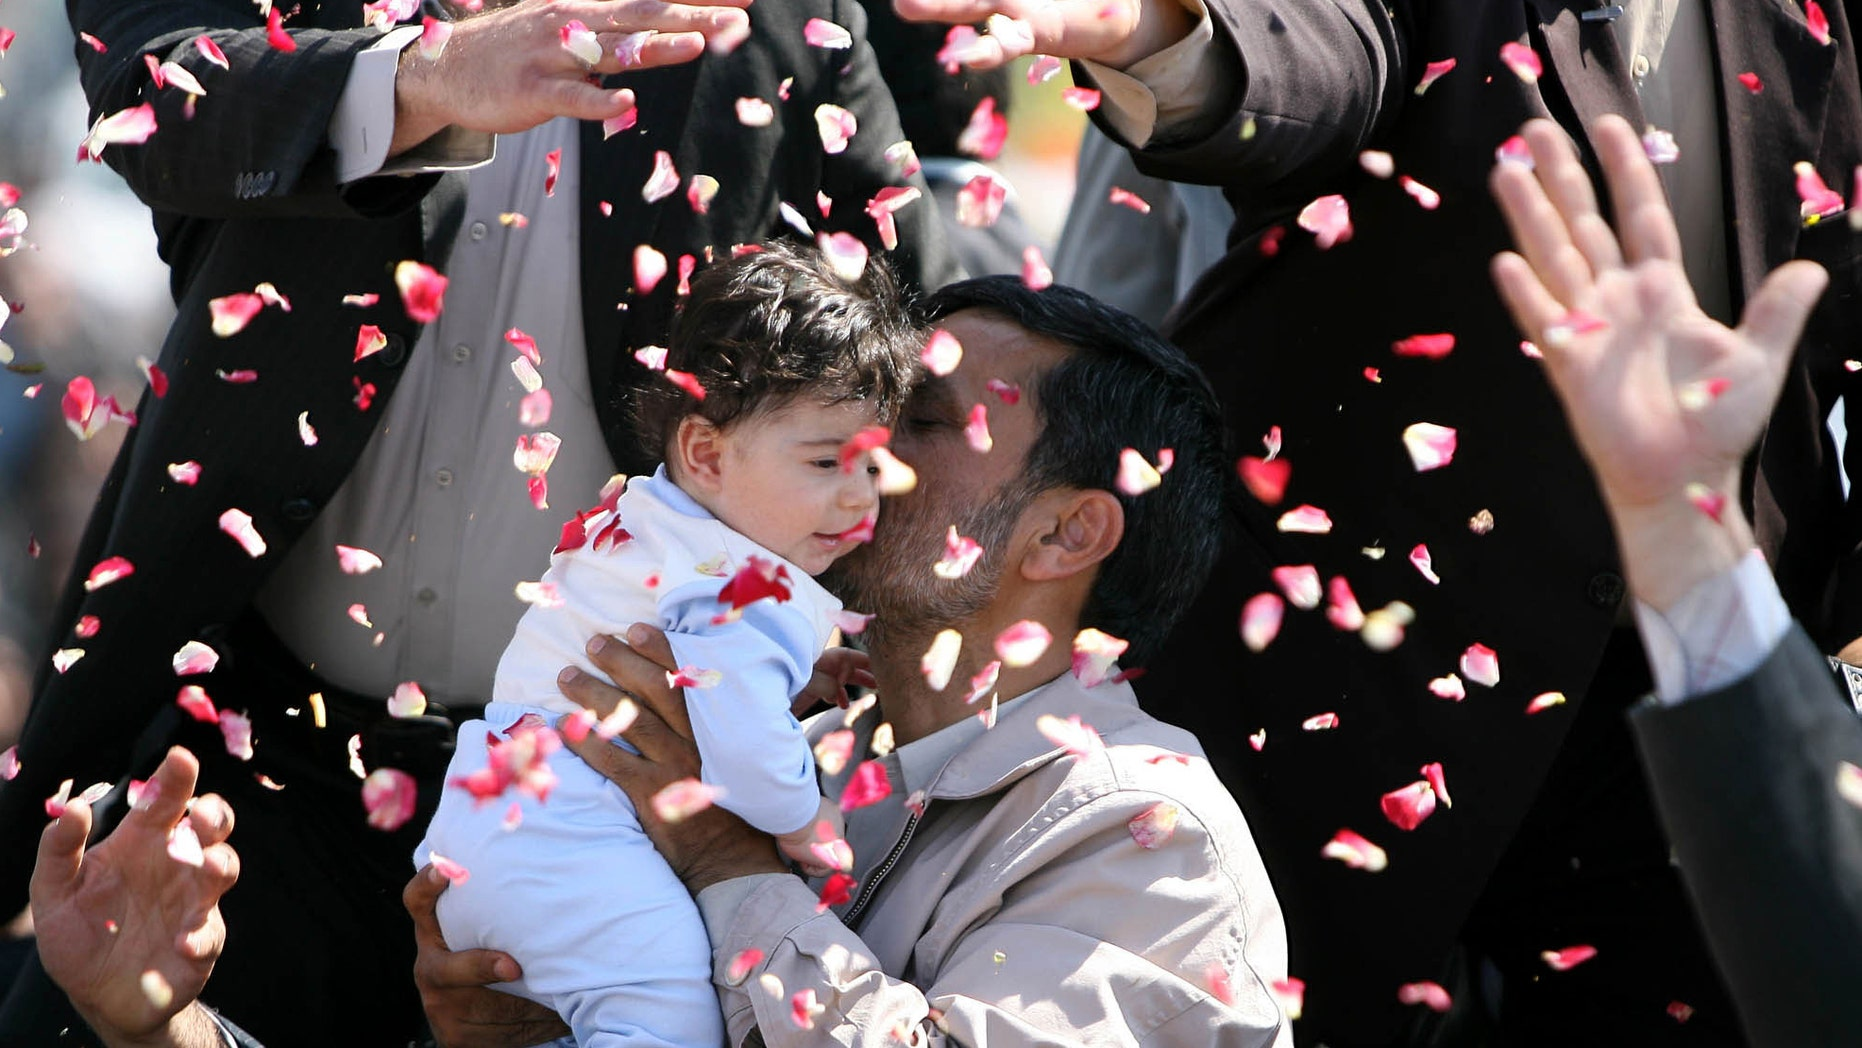 In this May, 20, 2009 photo, Iran's President Mahmoud Ahmadinejad hugs a child and is showered with flower petals during his visit to Semnan, Iran. Iranian President Mahmoud Ahmadinejad inaugurated a new policy on July 27, 2010 to encourage population growth, whereby the government will pay families for every new child. (AP)